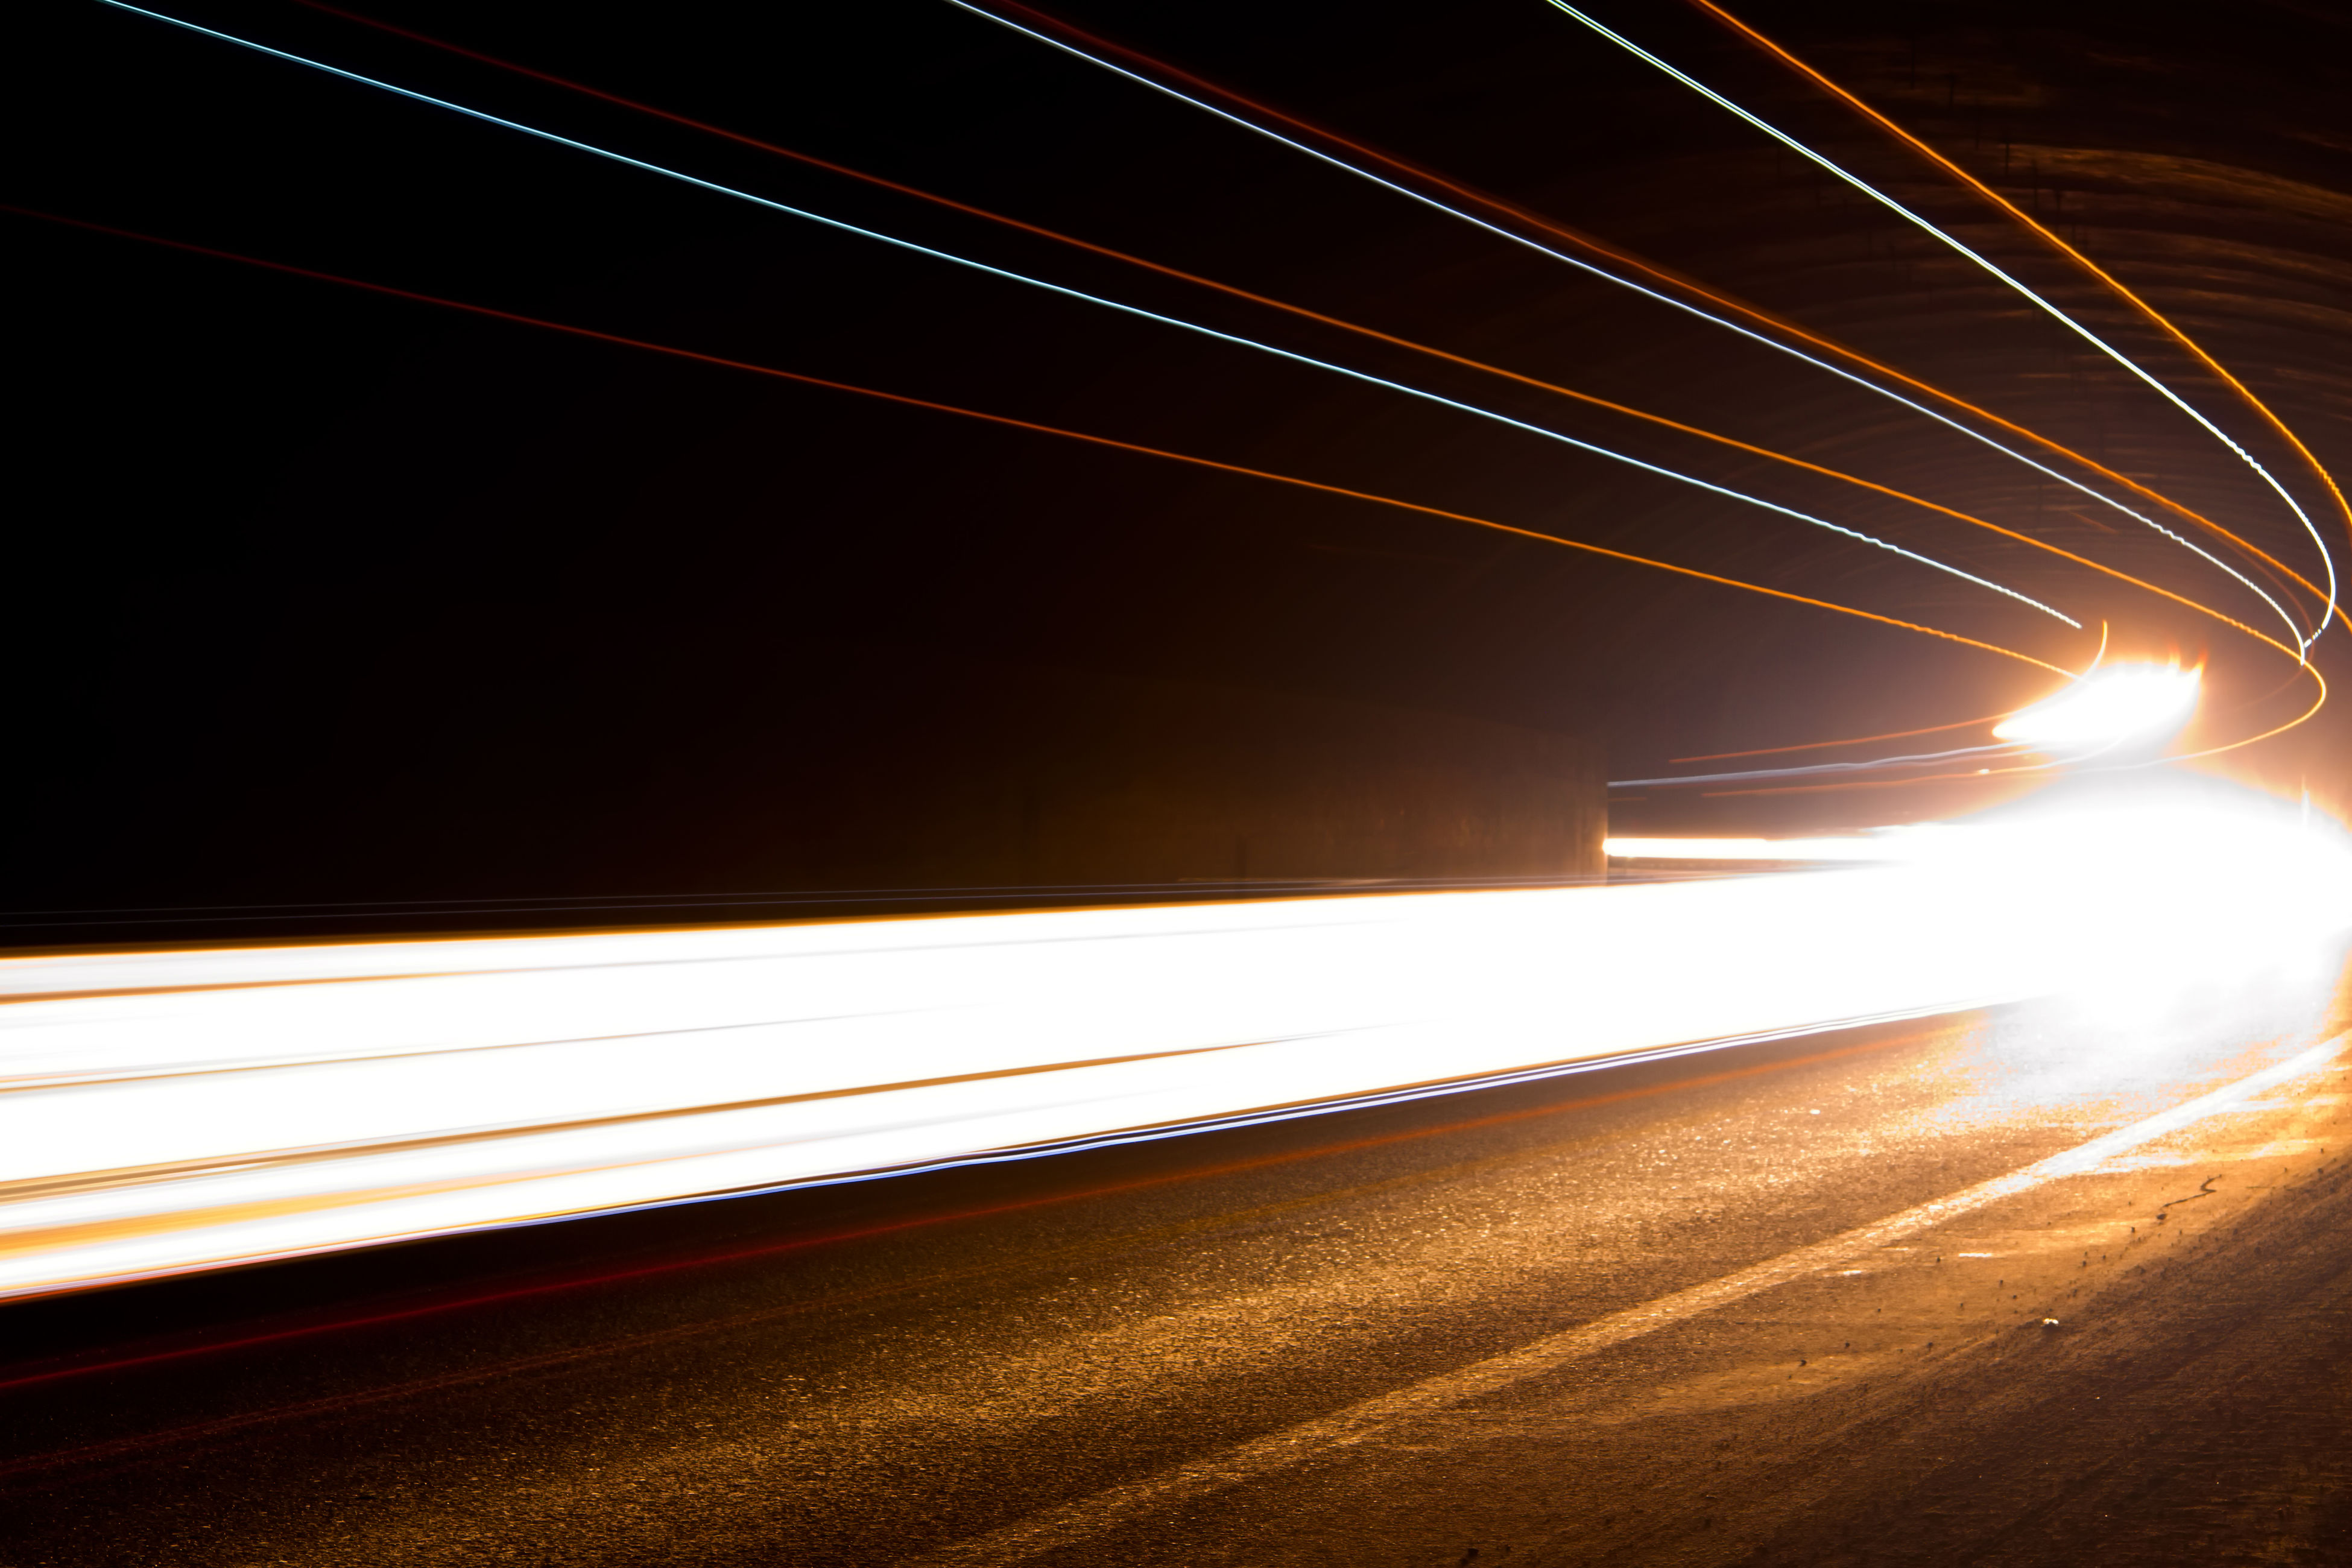 speed, transportation, light trail, night, illuminated, blurred motion, long exposure, motion, no people, outdoors, road, high street, sky